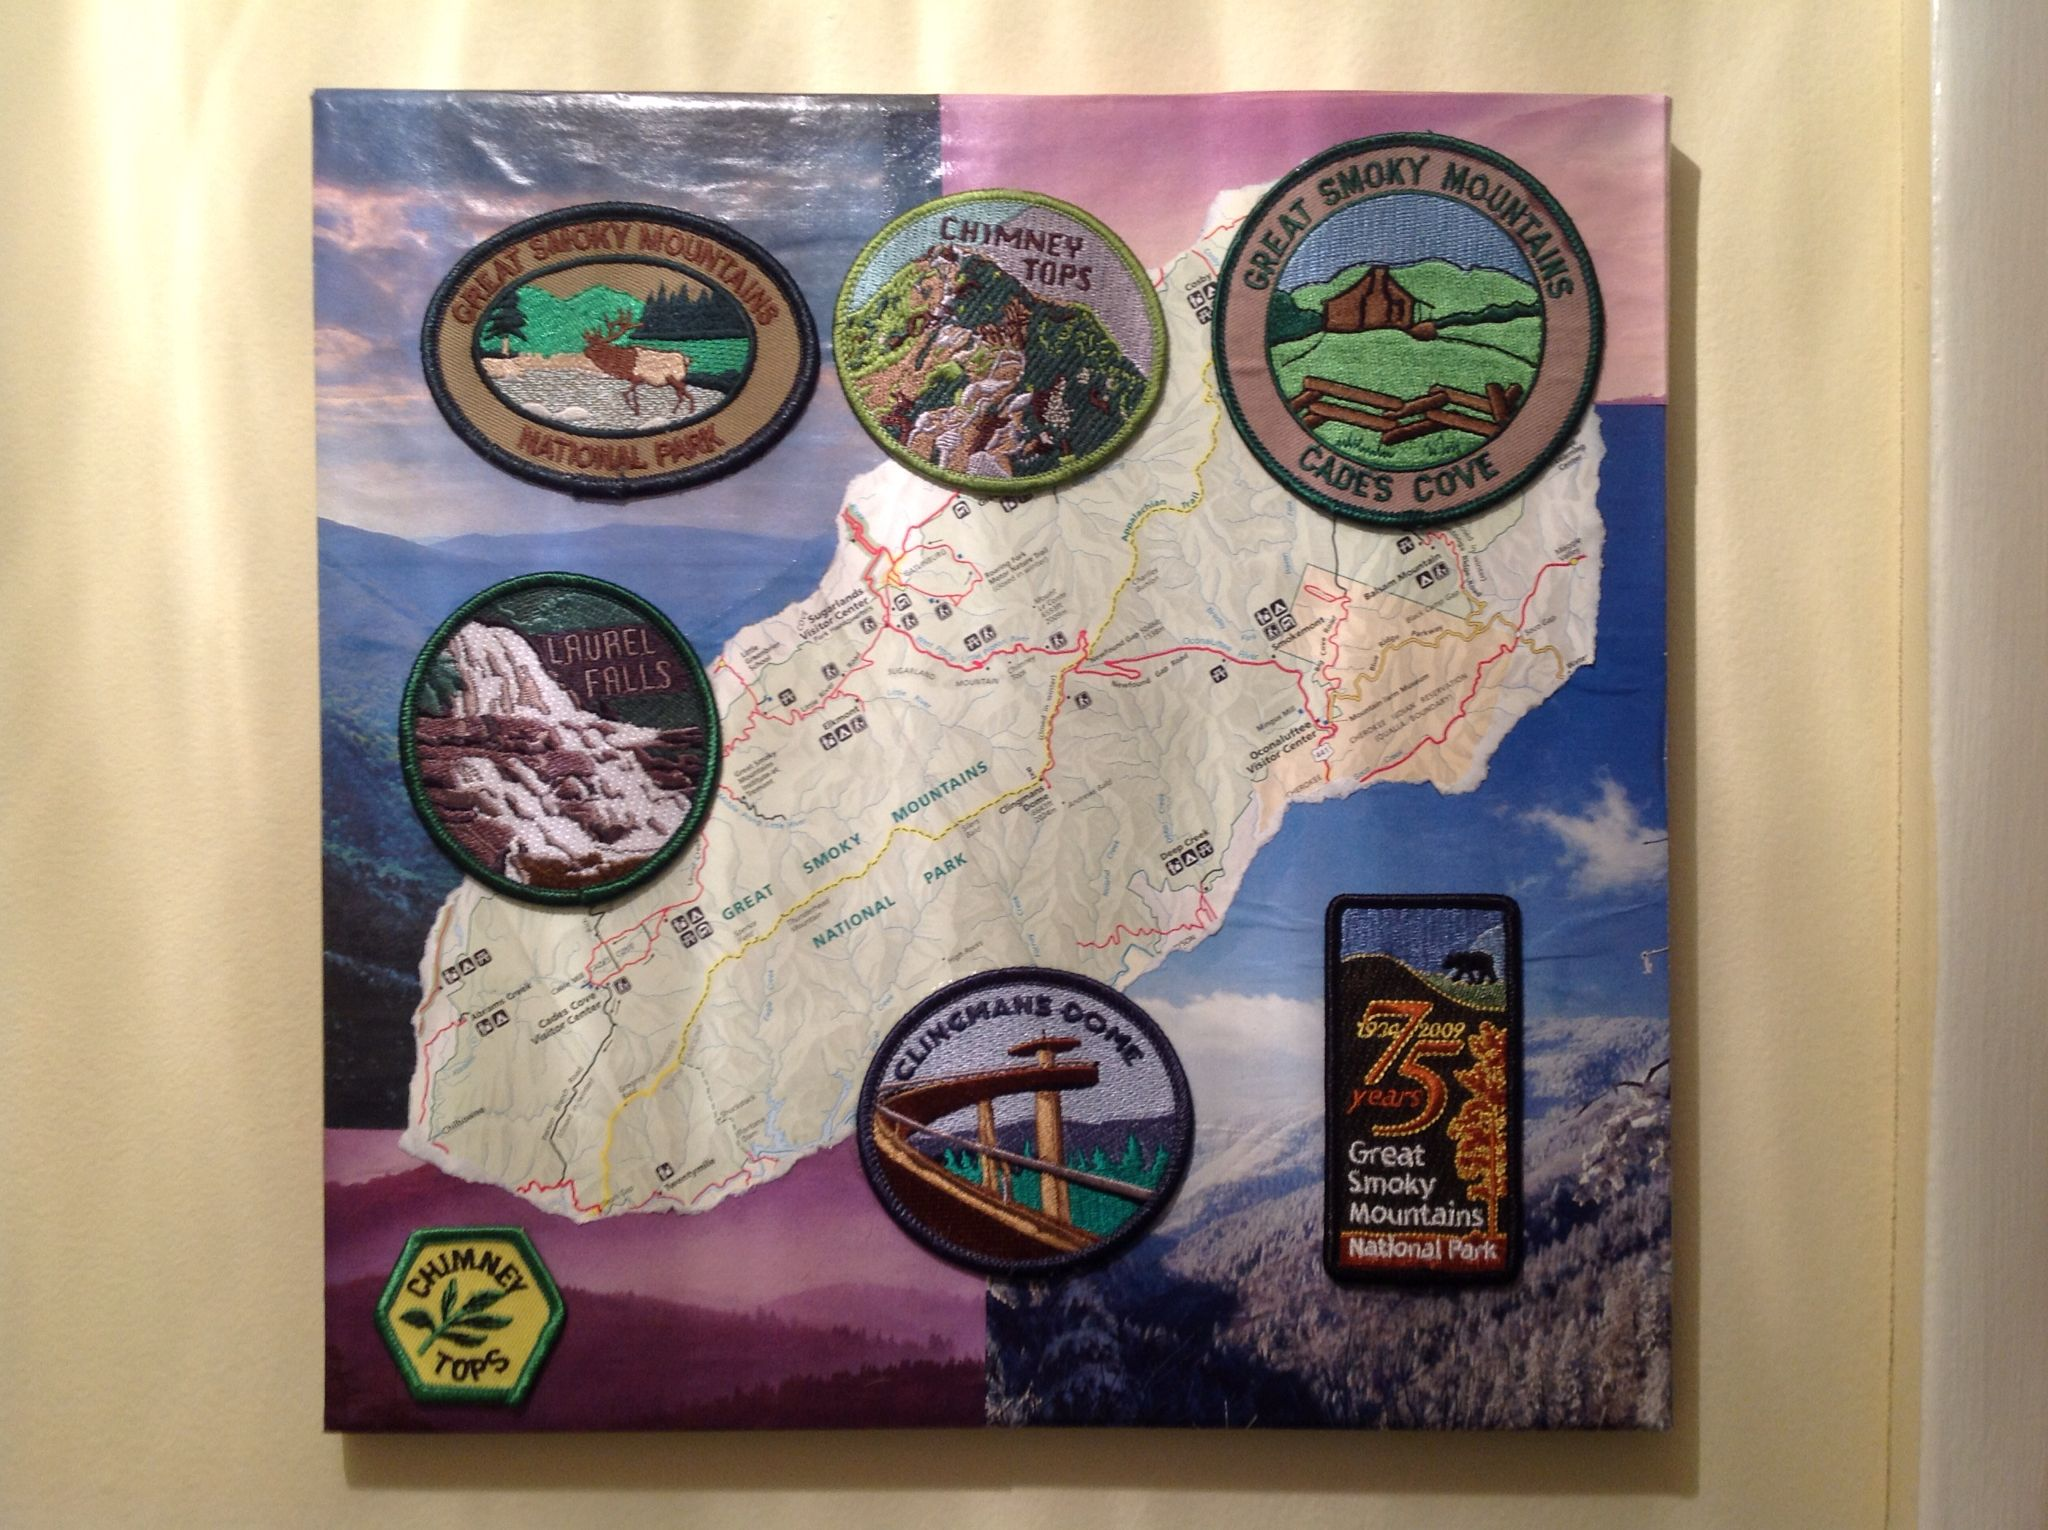 More of my patch displays patches from great smoky mountains 12 x more of my patch displays patches from great smoky mountains 12 x 12 canvas gumiabroncs Gallery